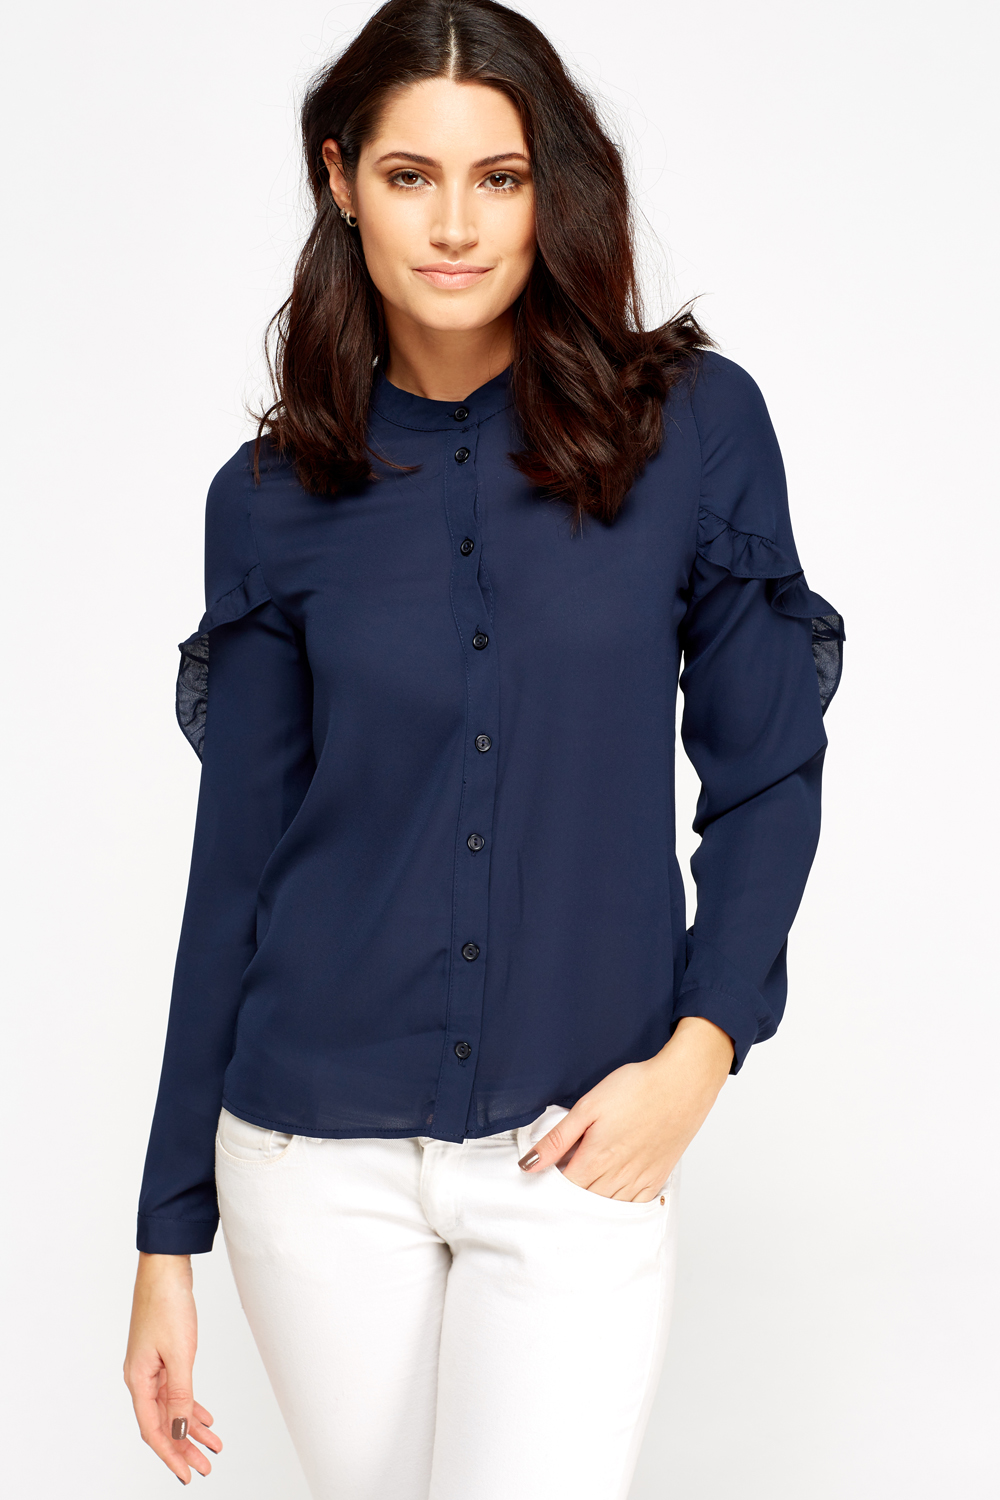 9f1ea5d29a Flared Sleeve Button Up Blouse - Just £5